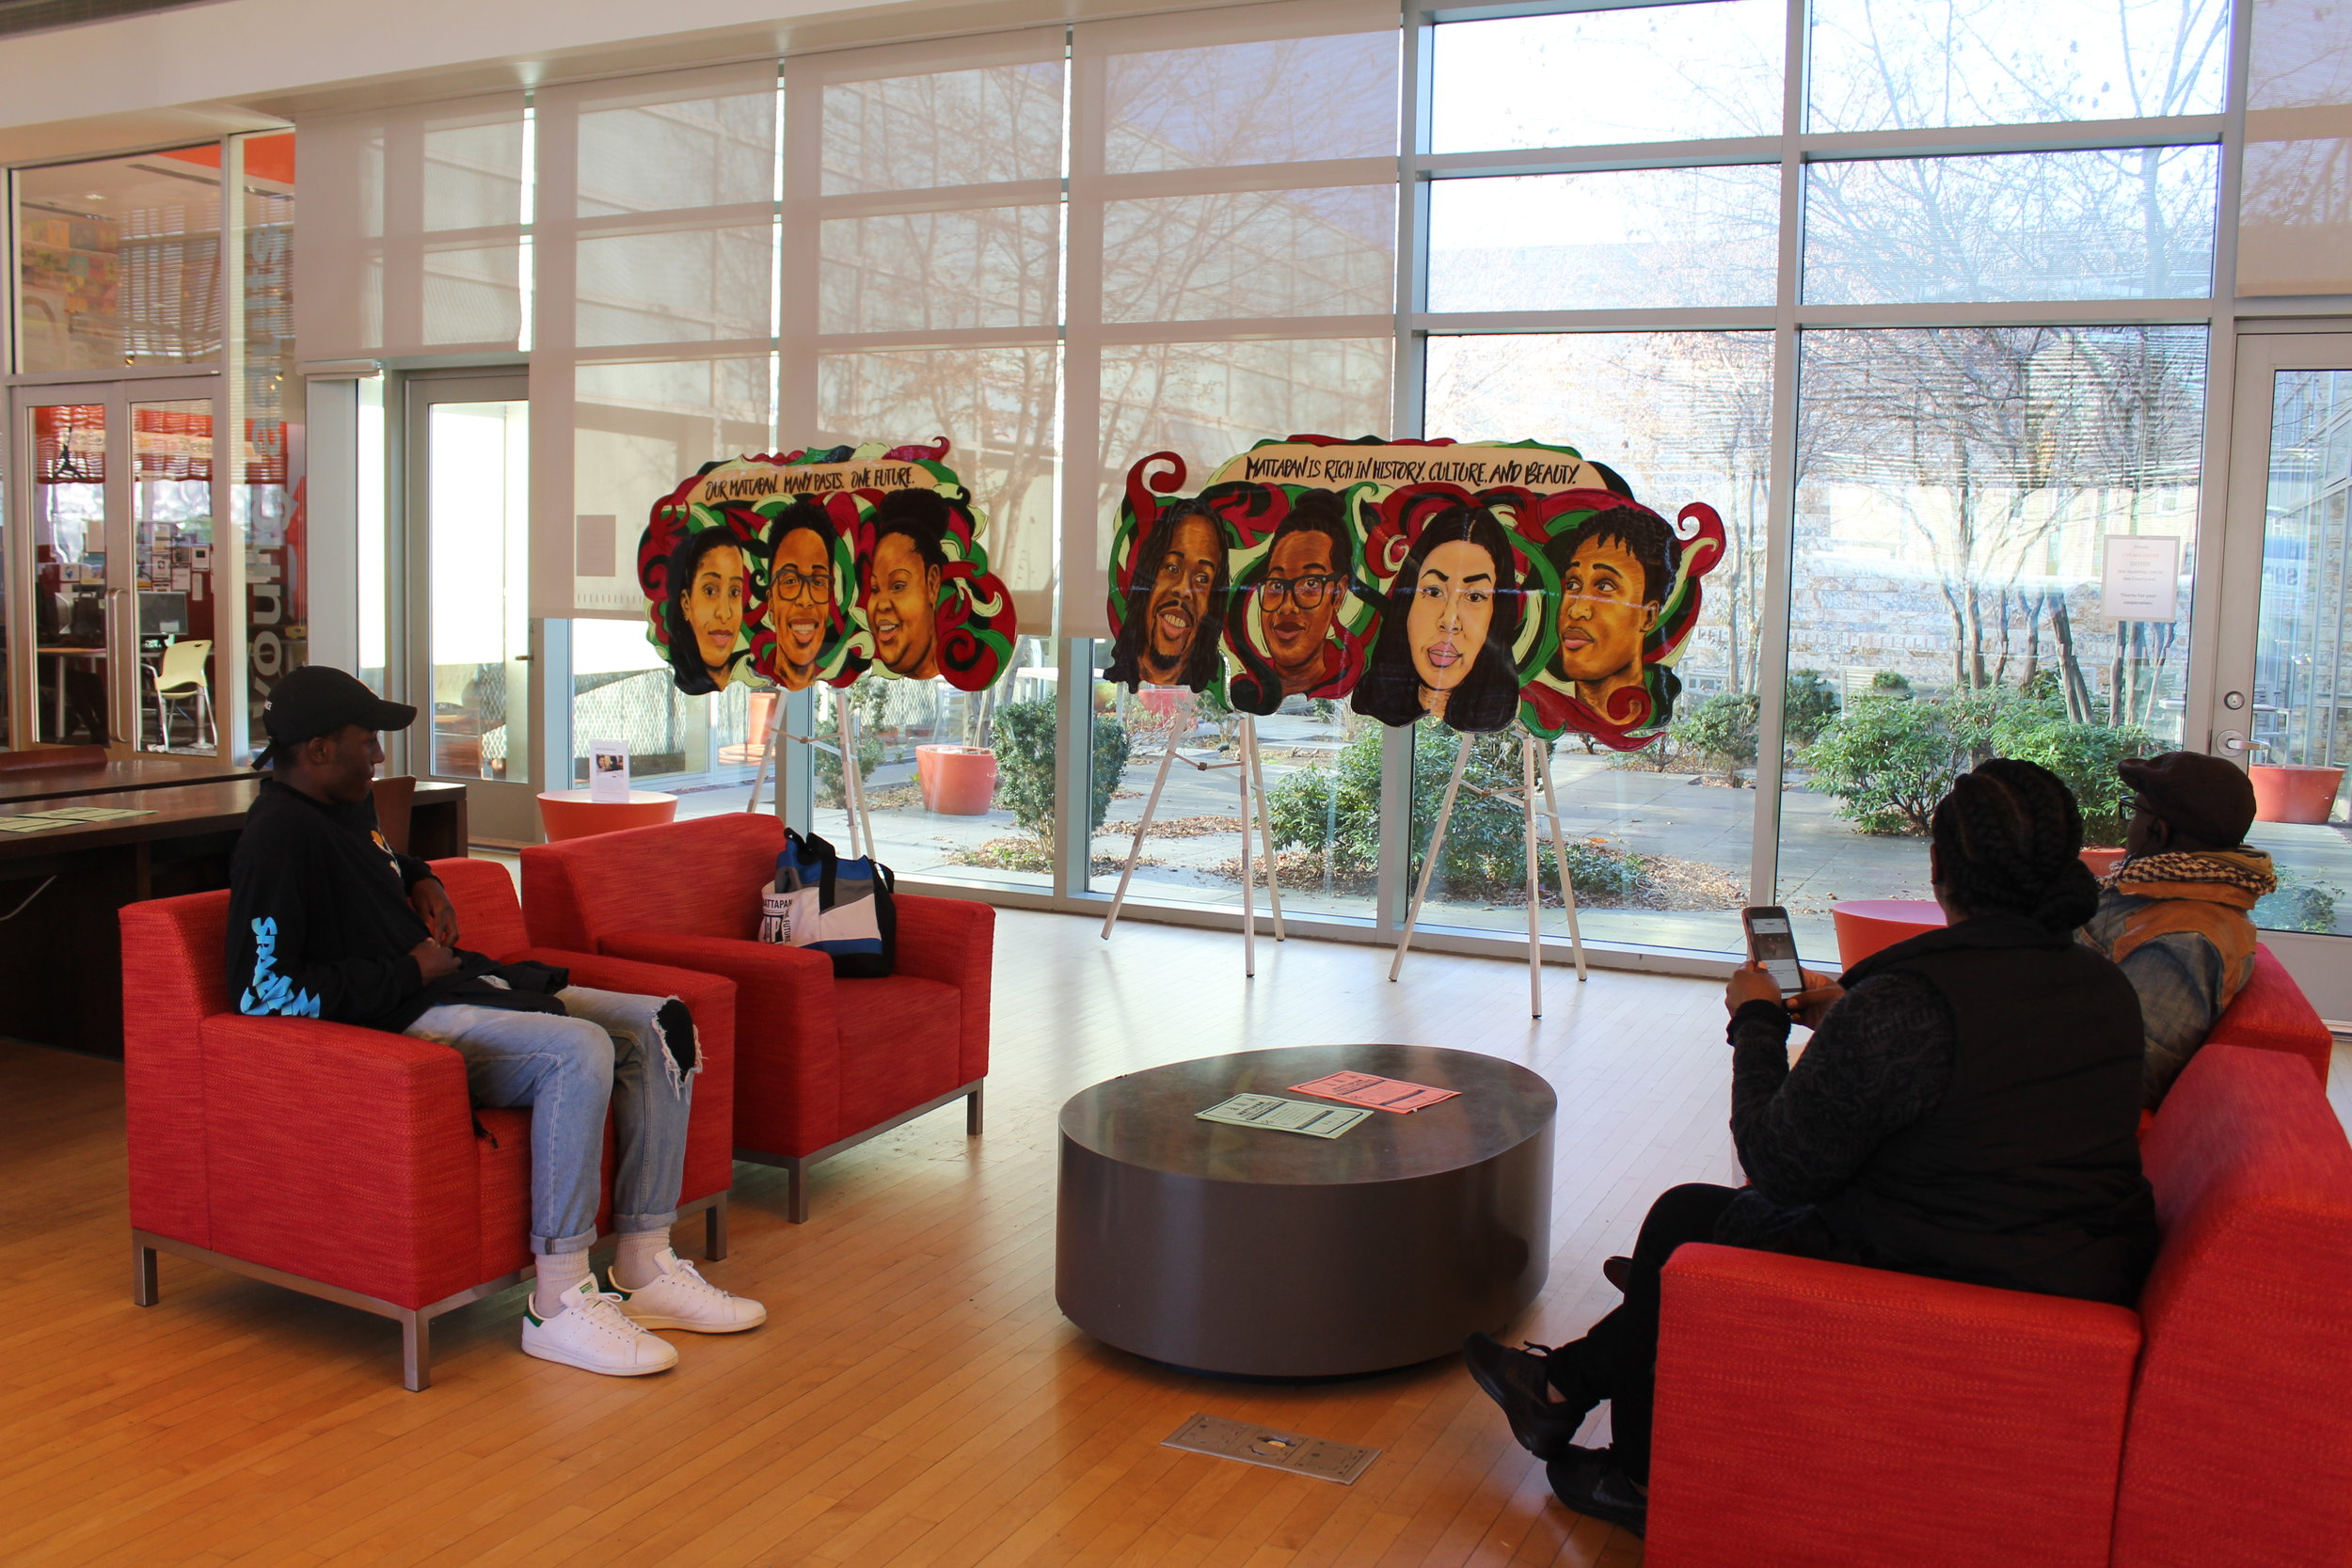 Faces of Mattapan, (2017, wood, acrylic, resin, 15ft x 4ft) on view at the Mattapan Library